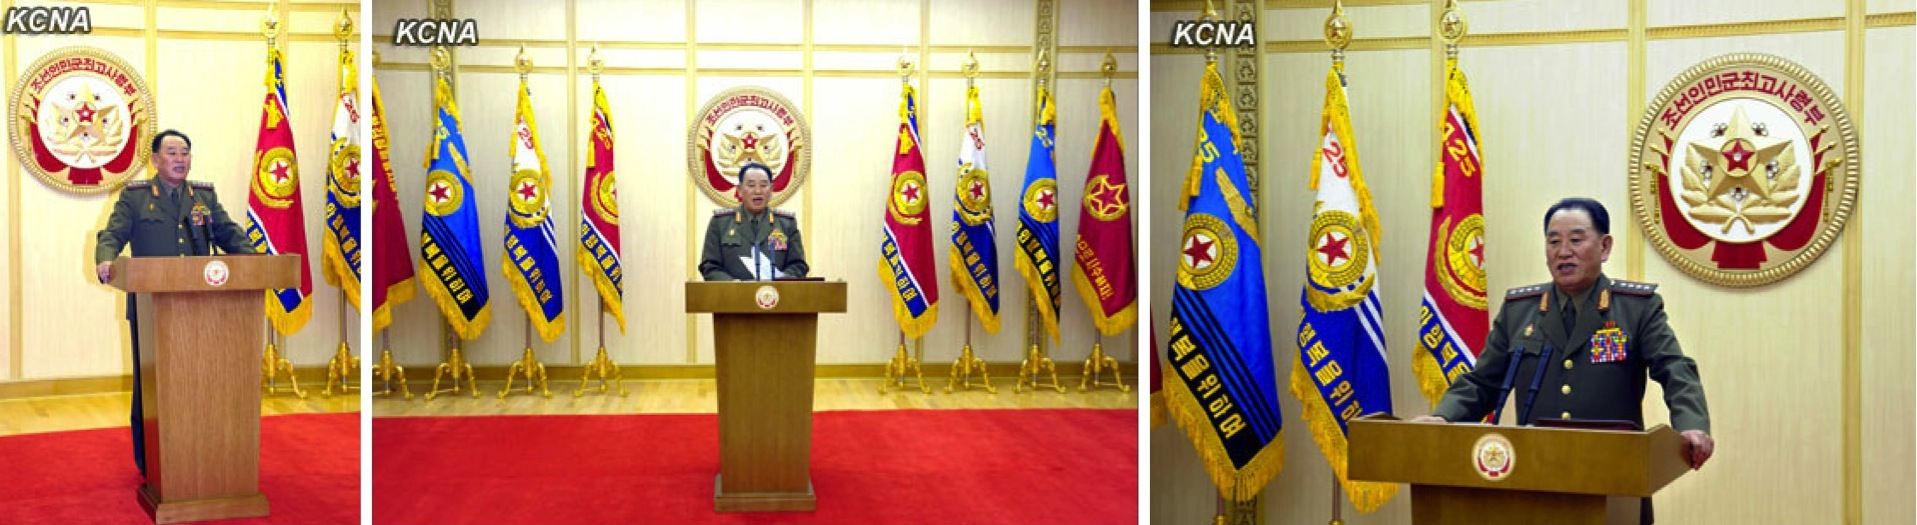 "Gen. Kim Yong Chol, acting as a spokesman for the KPA Supreme Command reads a statement on 5 March 2013 threatening to ""nullify"" the armistice agreement which ended active hostilities of the Korean War (Fatherland Liberation War).  (Photos: KCNA)"